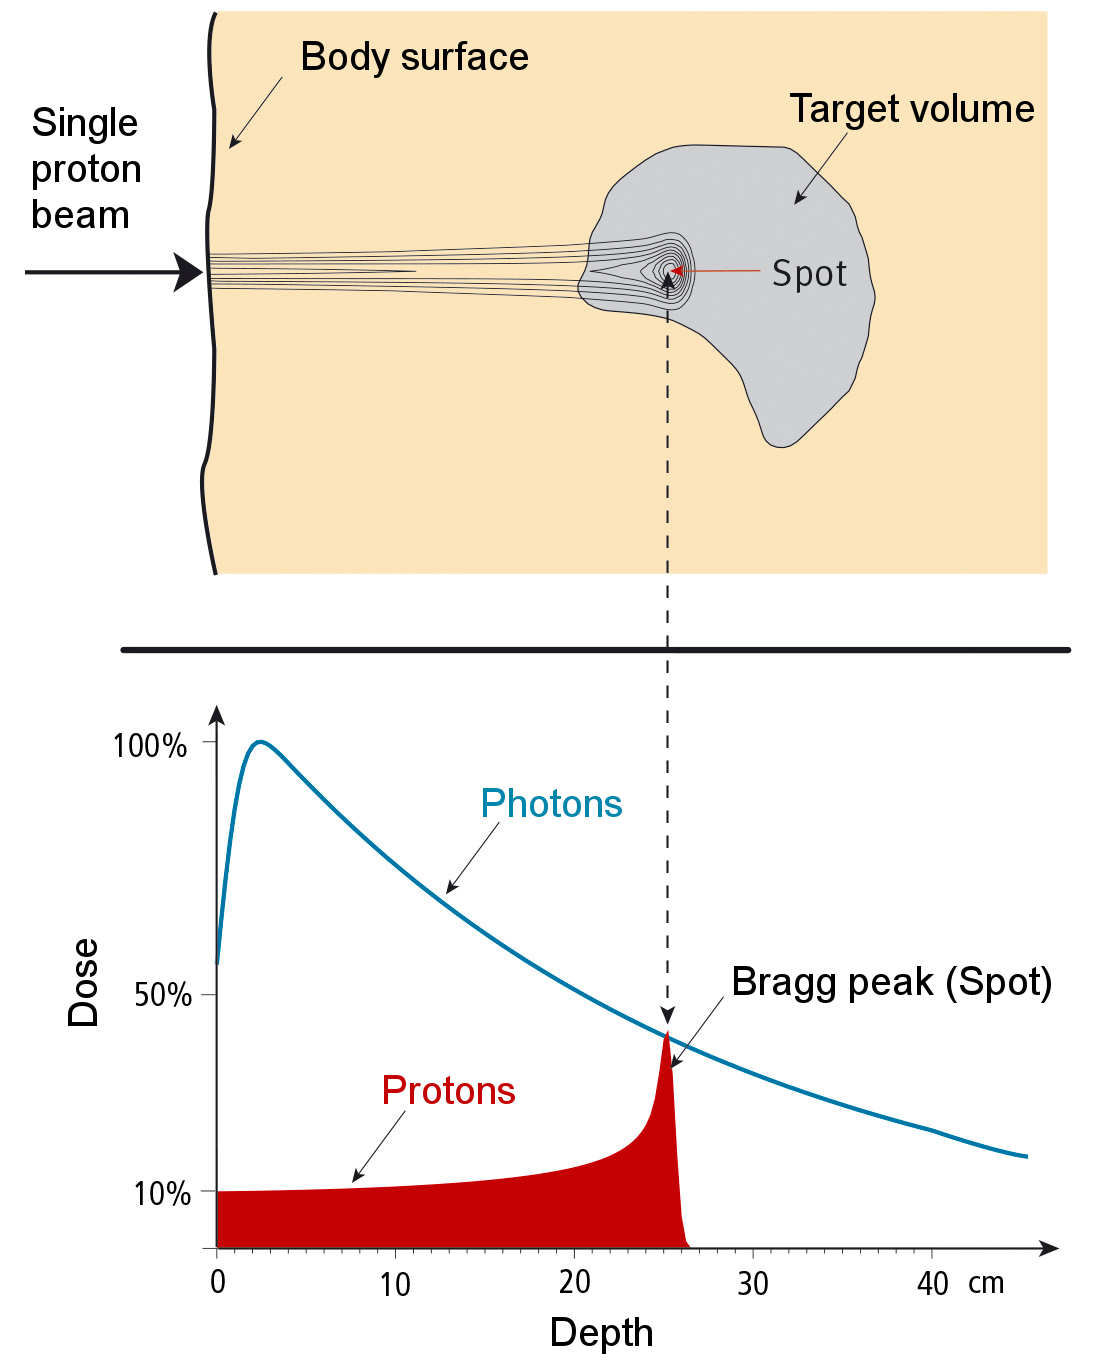 Radiation dose of a proton pencil beam as a function of depth of tissue. The range of this proton beam is 25 cm. In the top panel the dose distribution is shown. In the bottom panel the dose deposited by a proton beam in comparison with that of a photon beam is shown.